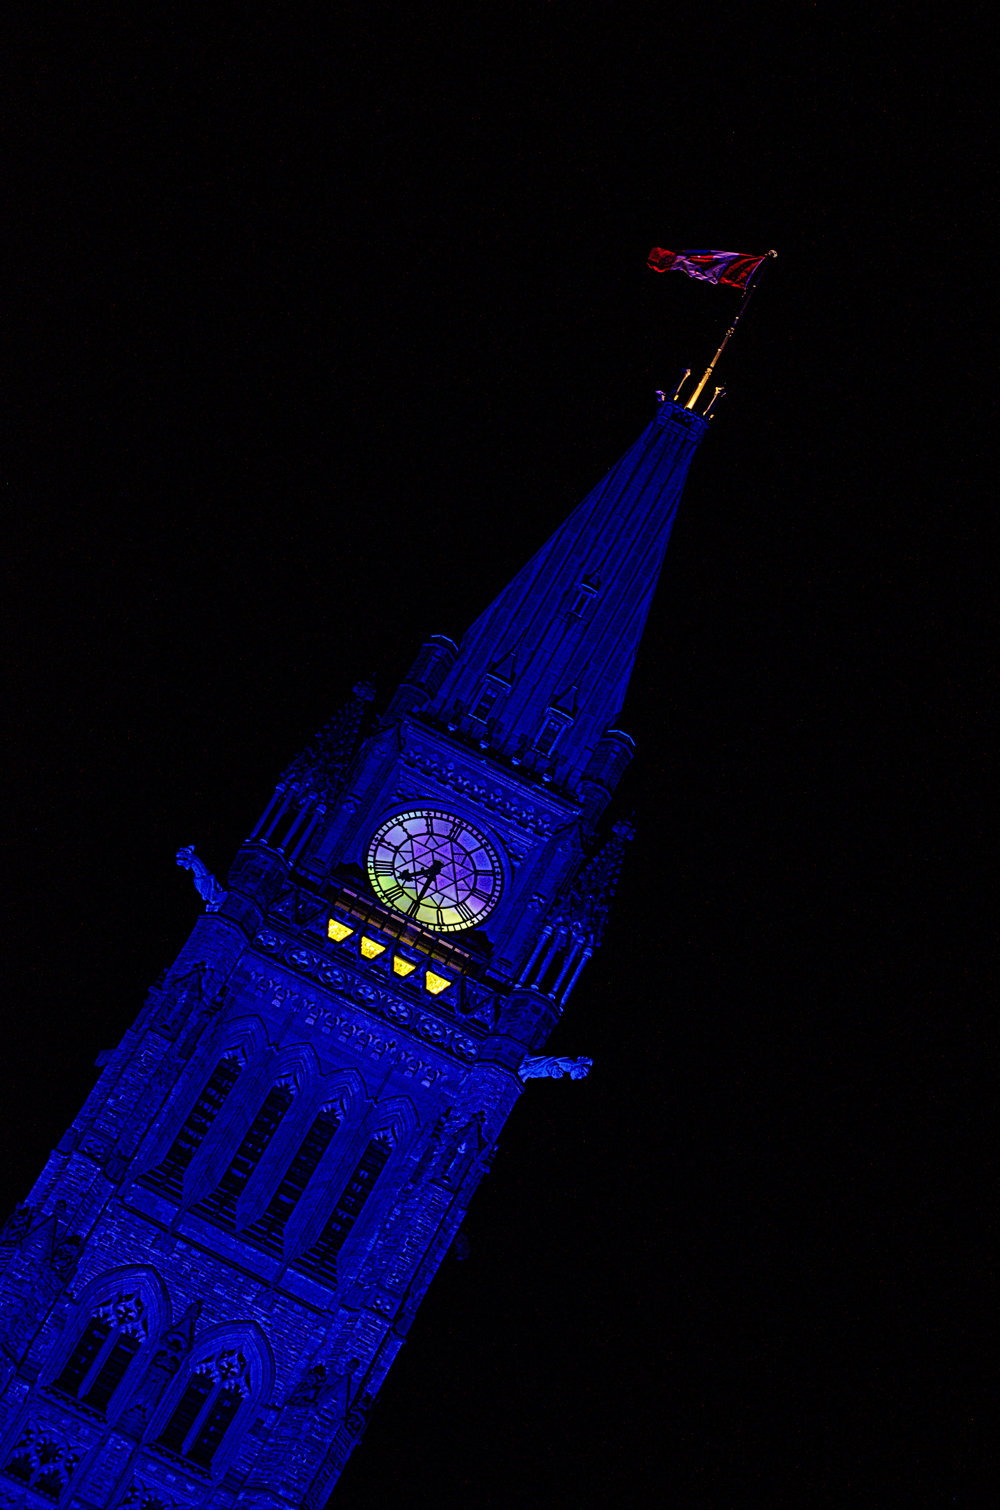 The Peace Tower glows purple in the night. The clock tower is a striking landmark of Ottawa's skyline.